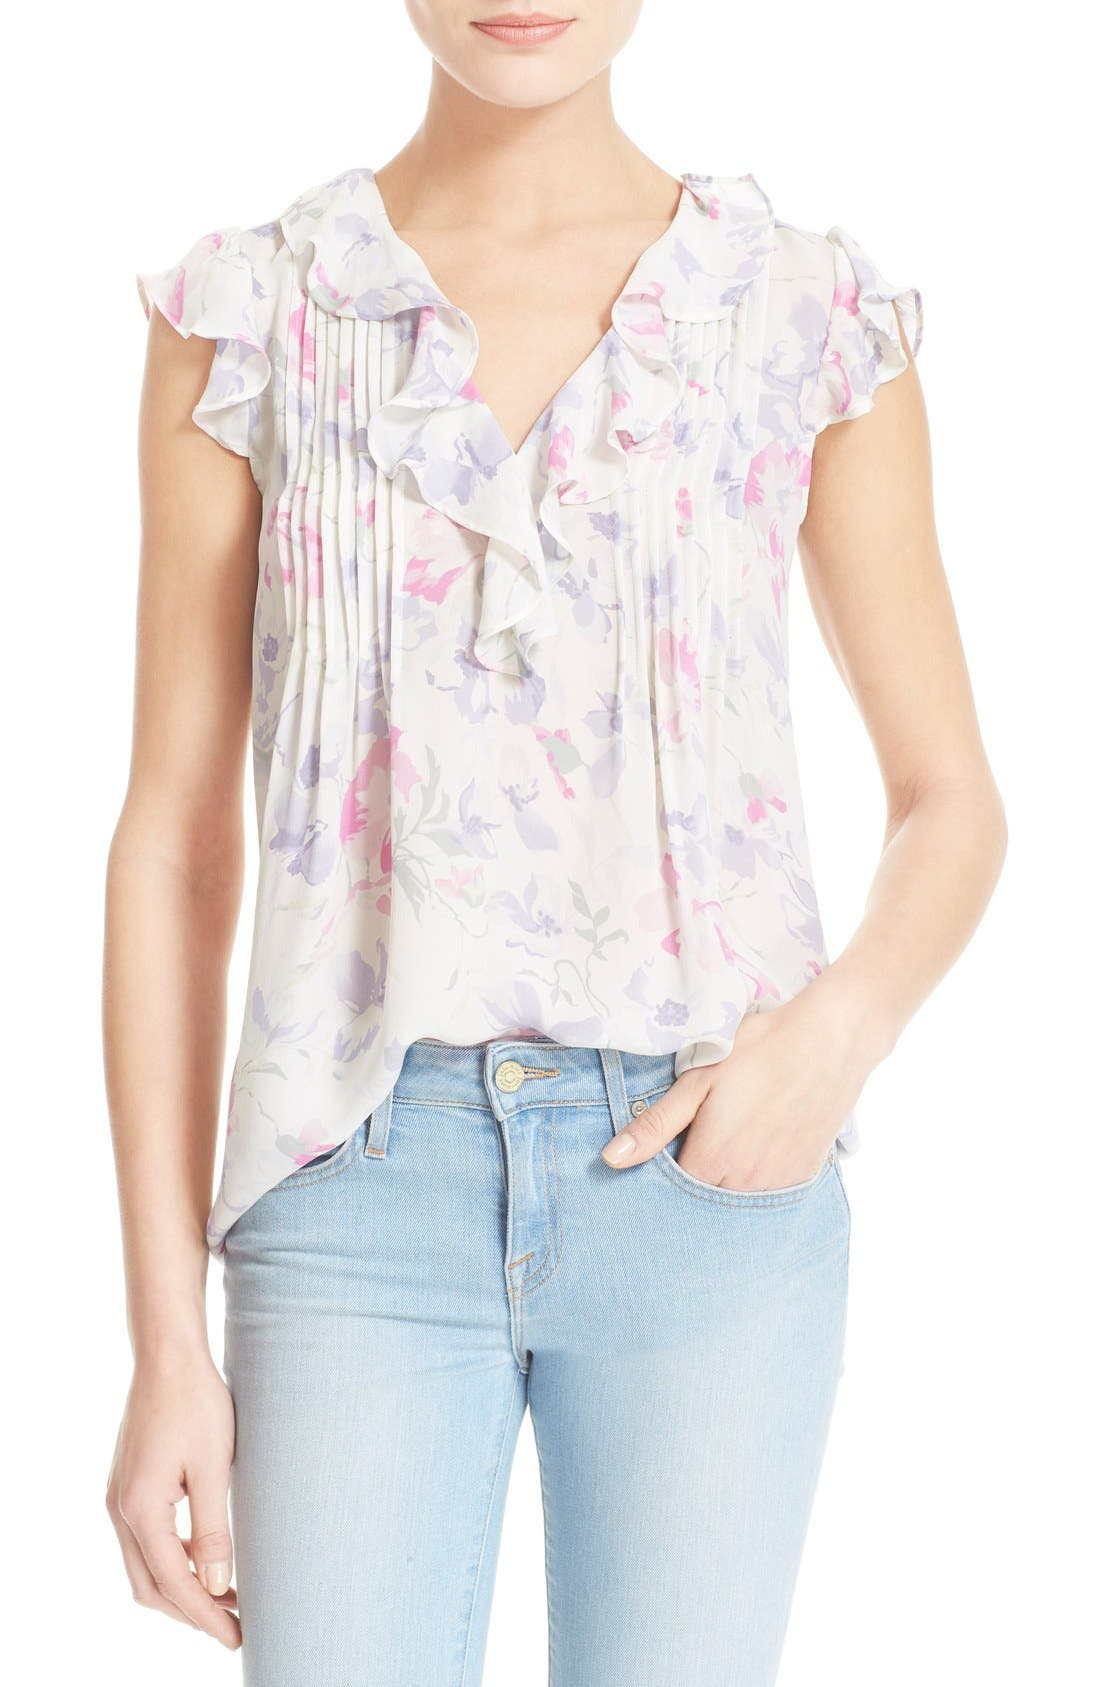 Alternate Image 1 Selected - Joie 'Olvera' Floral Print Blouse